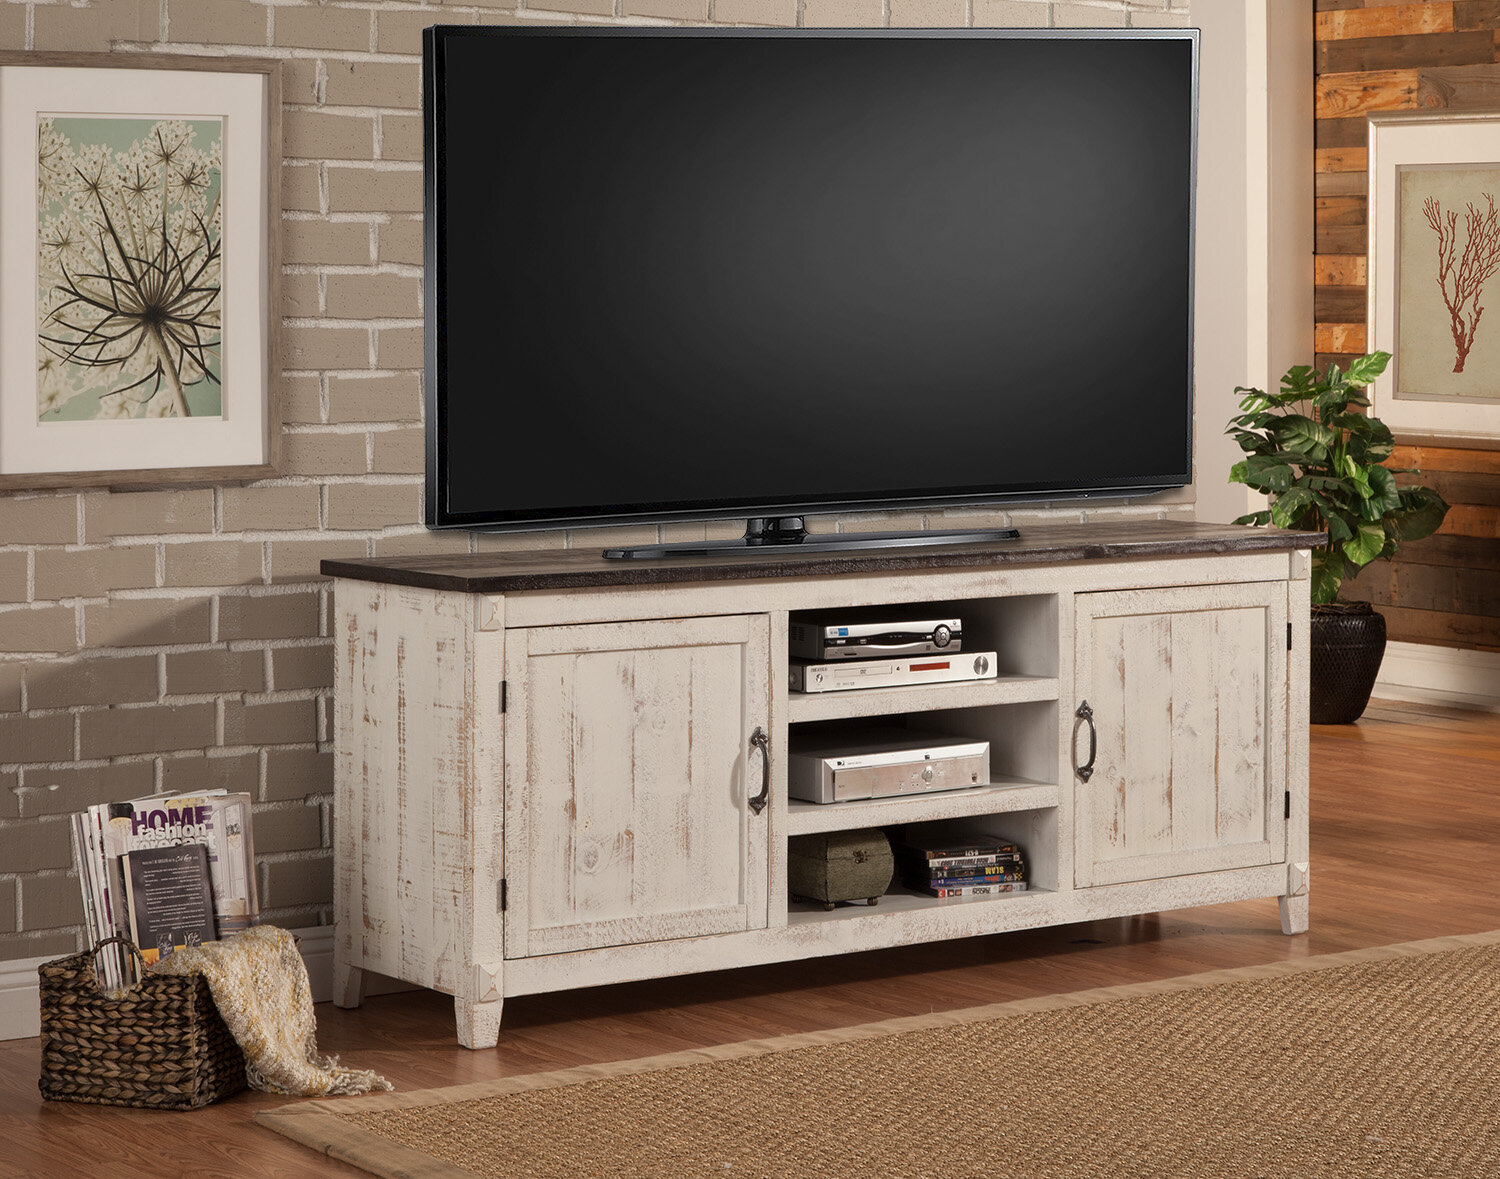 Highland Dunes Cedarburg Solid Wood Tv Stand For Tvs Up To 85 Reviews Wayfair